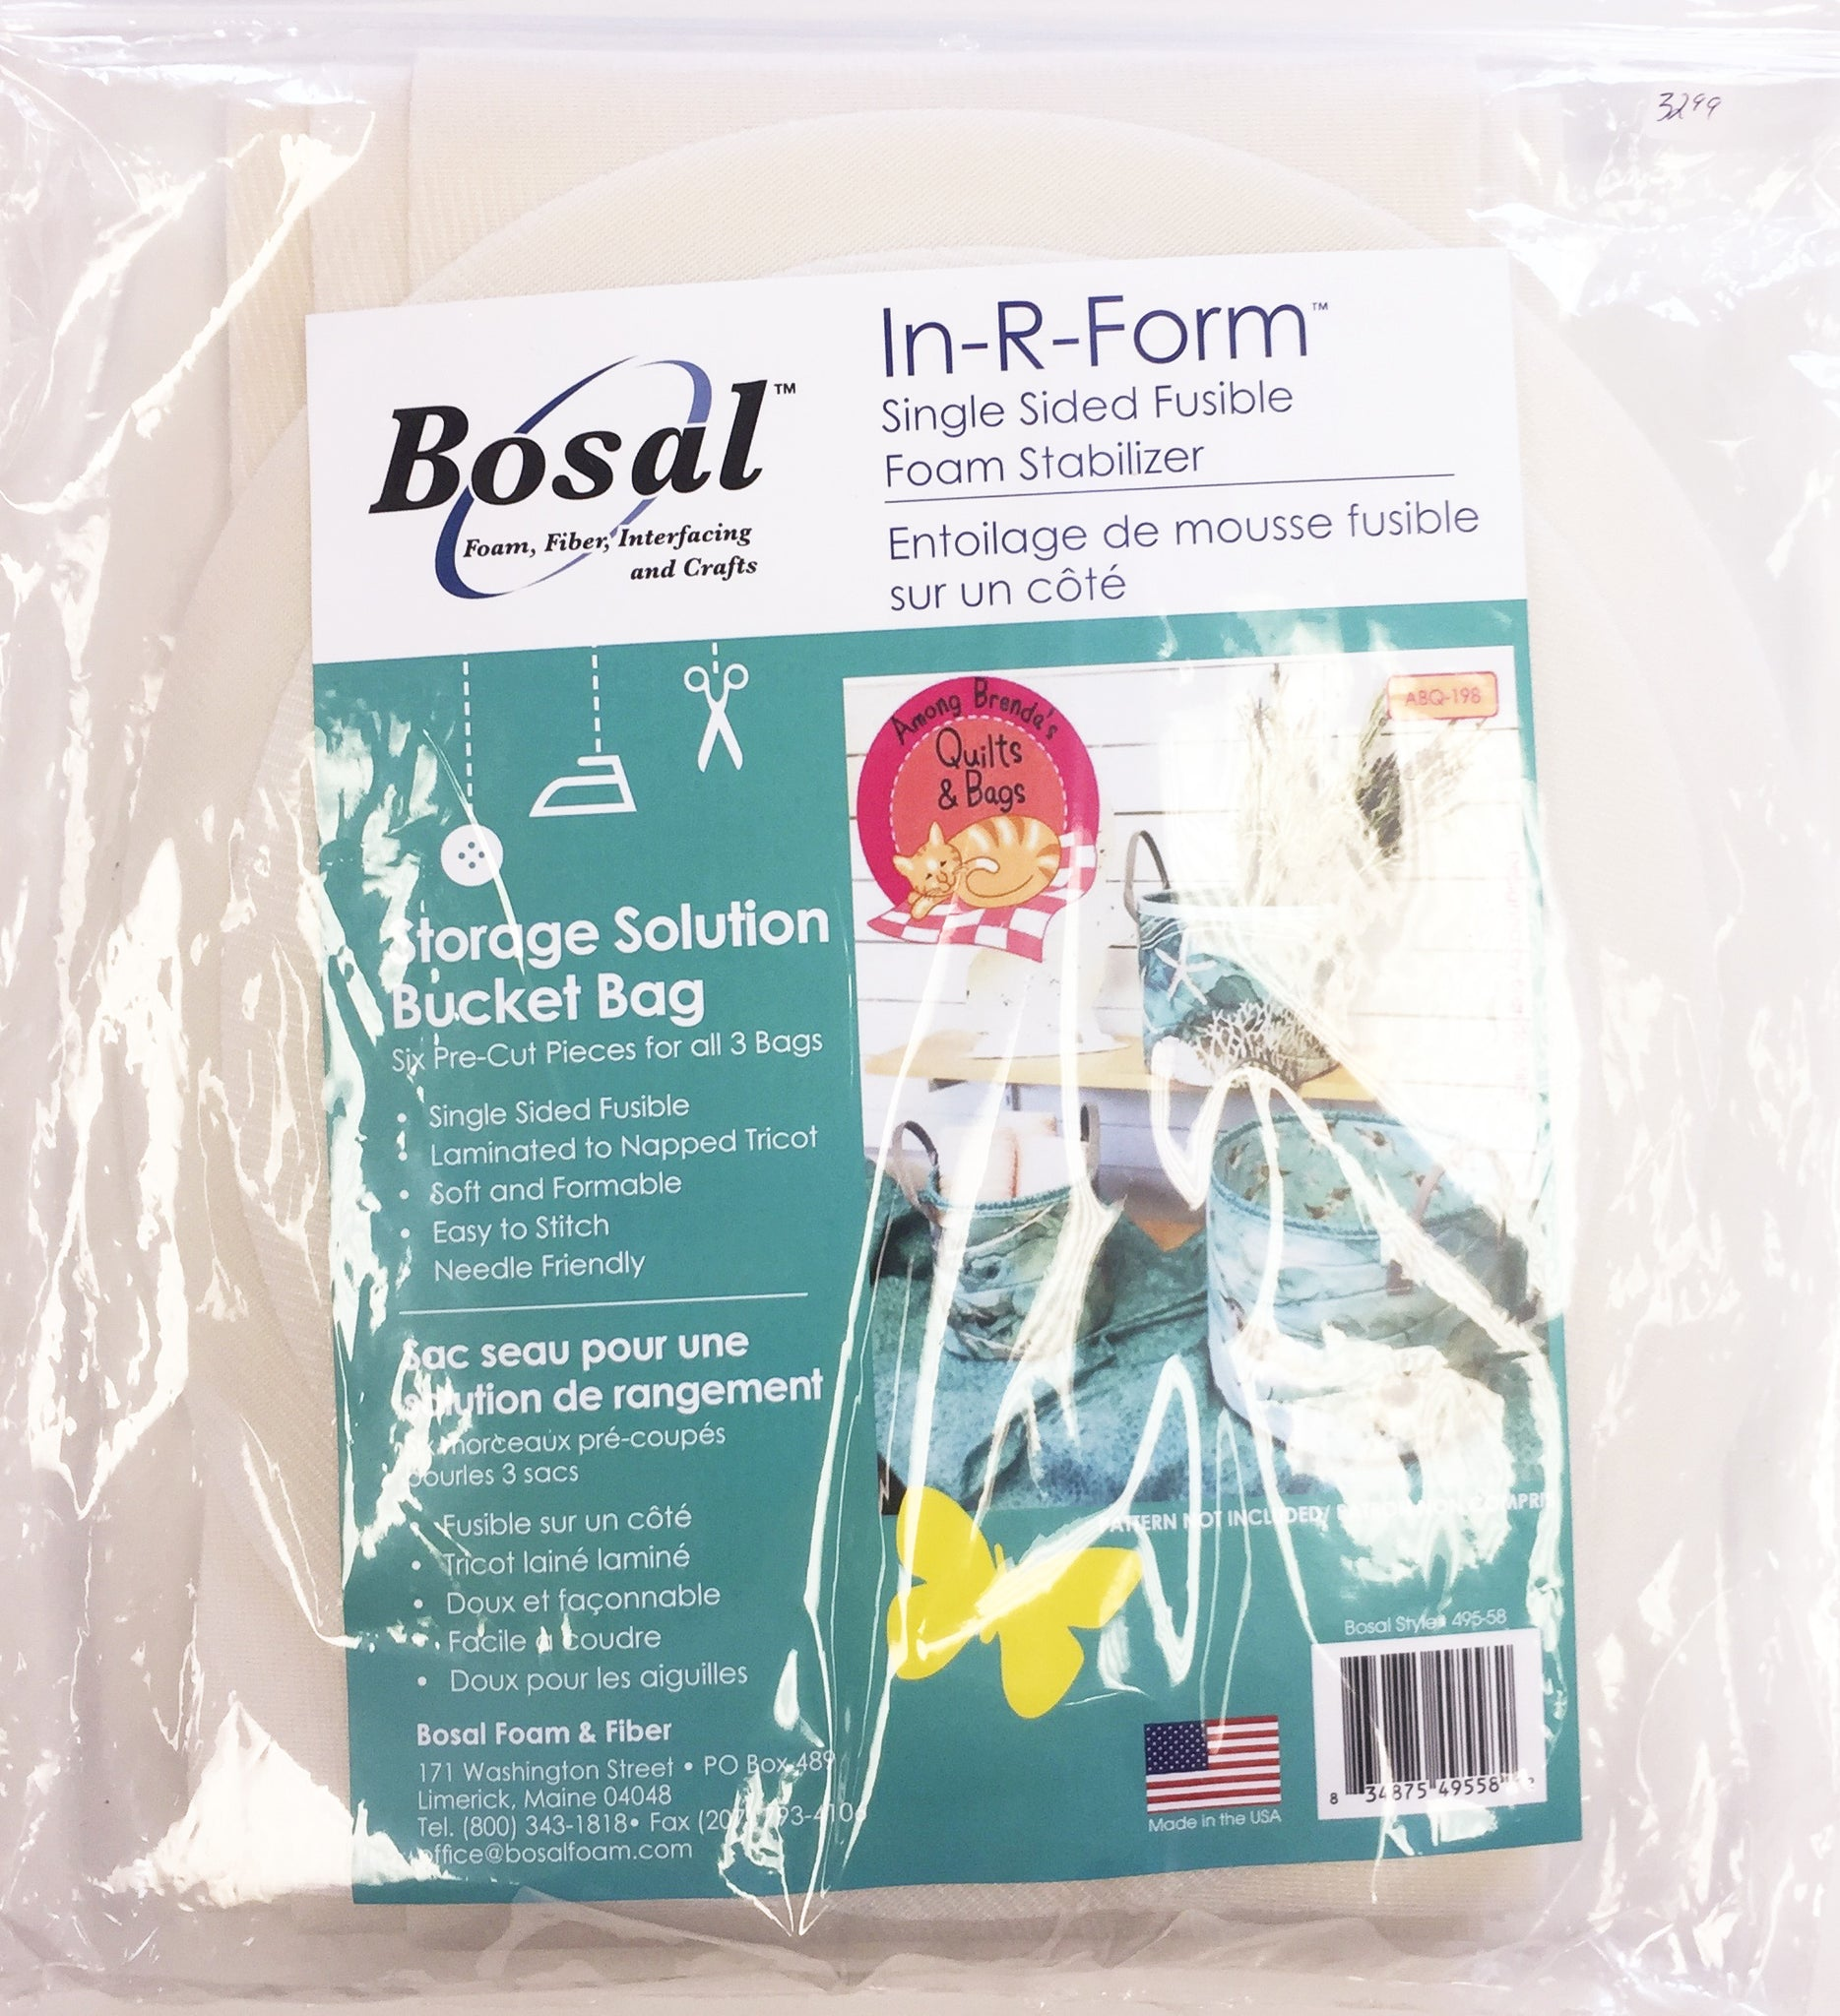 Bosal Storage Solution Bucket Bag Pre-cut, Bosal In-R-Form Single Sided Fusible Foam